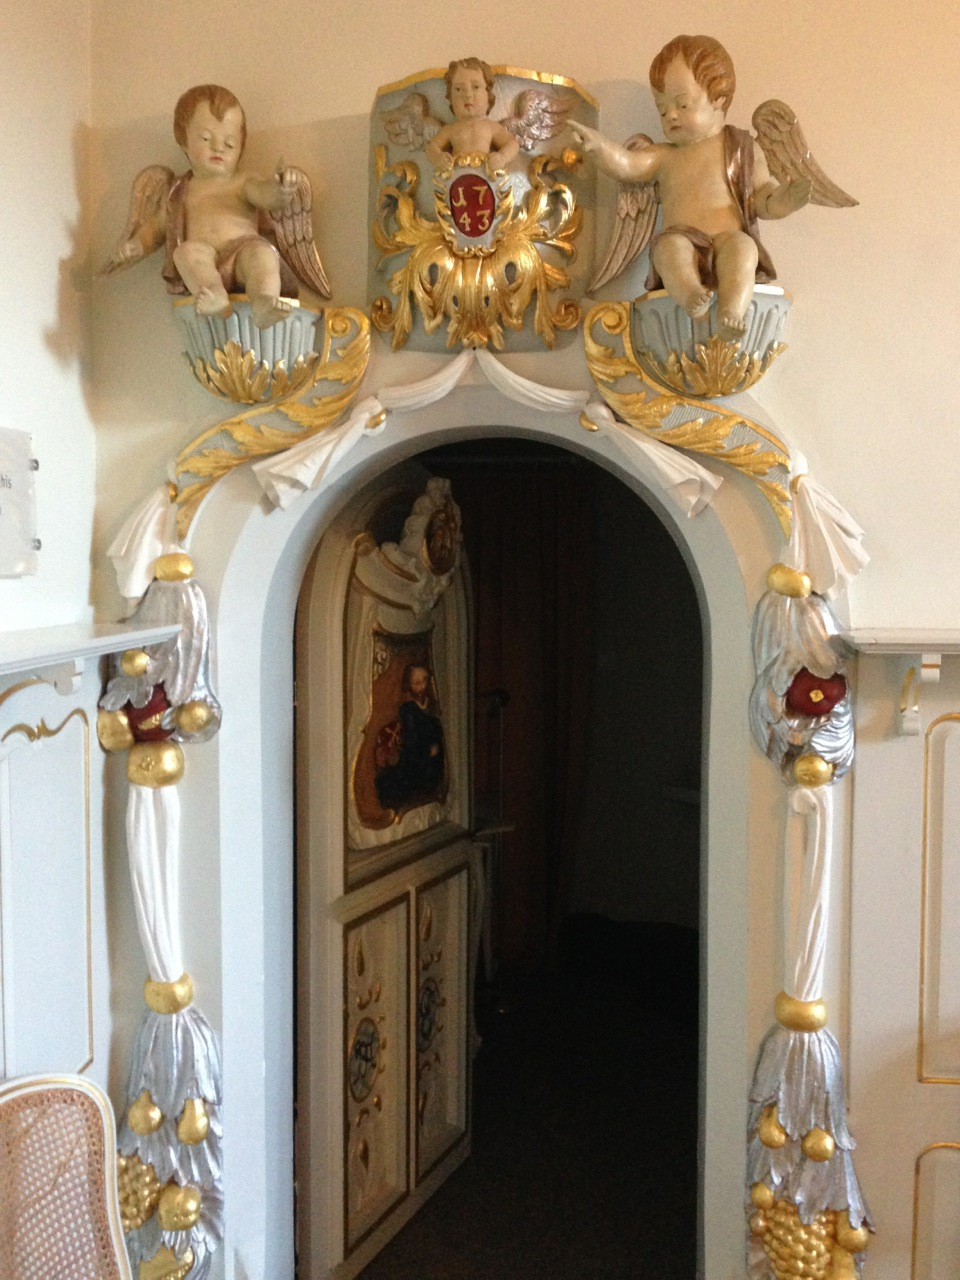 small ornate doorway decorated with naked cherubs and a shield with 1748 on it